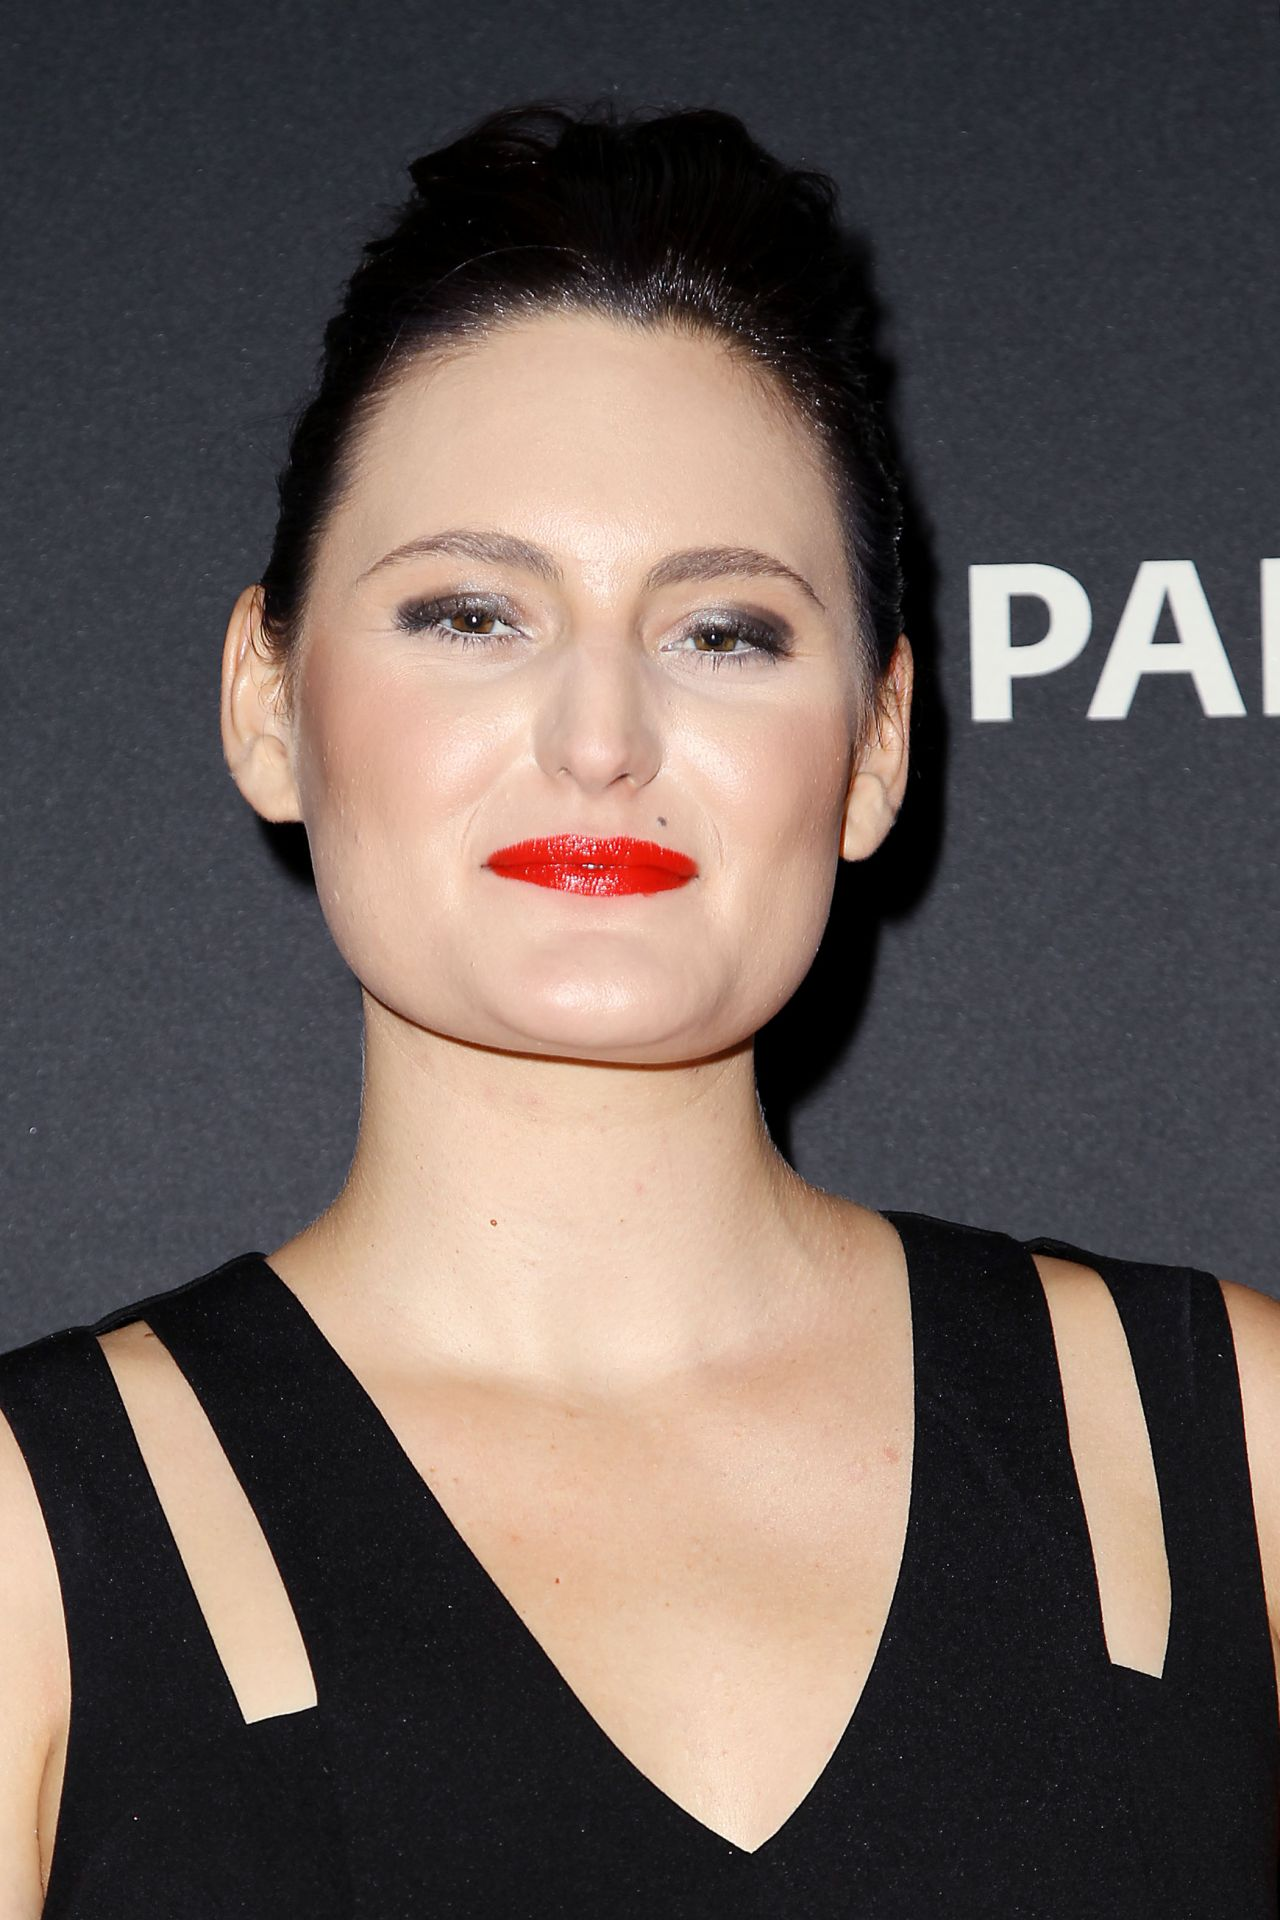 Mary Chieffo nudes (17 images) Gallery, Twitter, butt